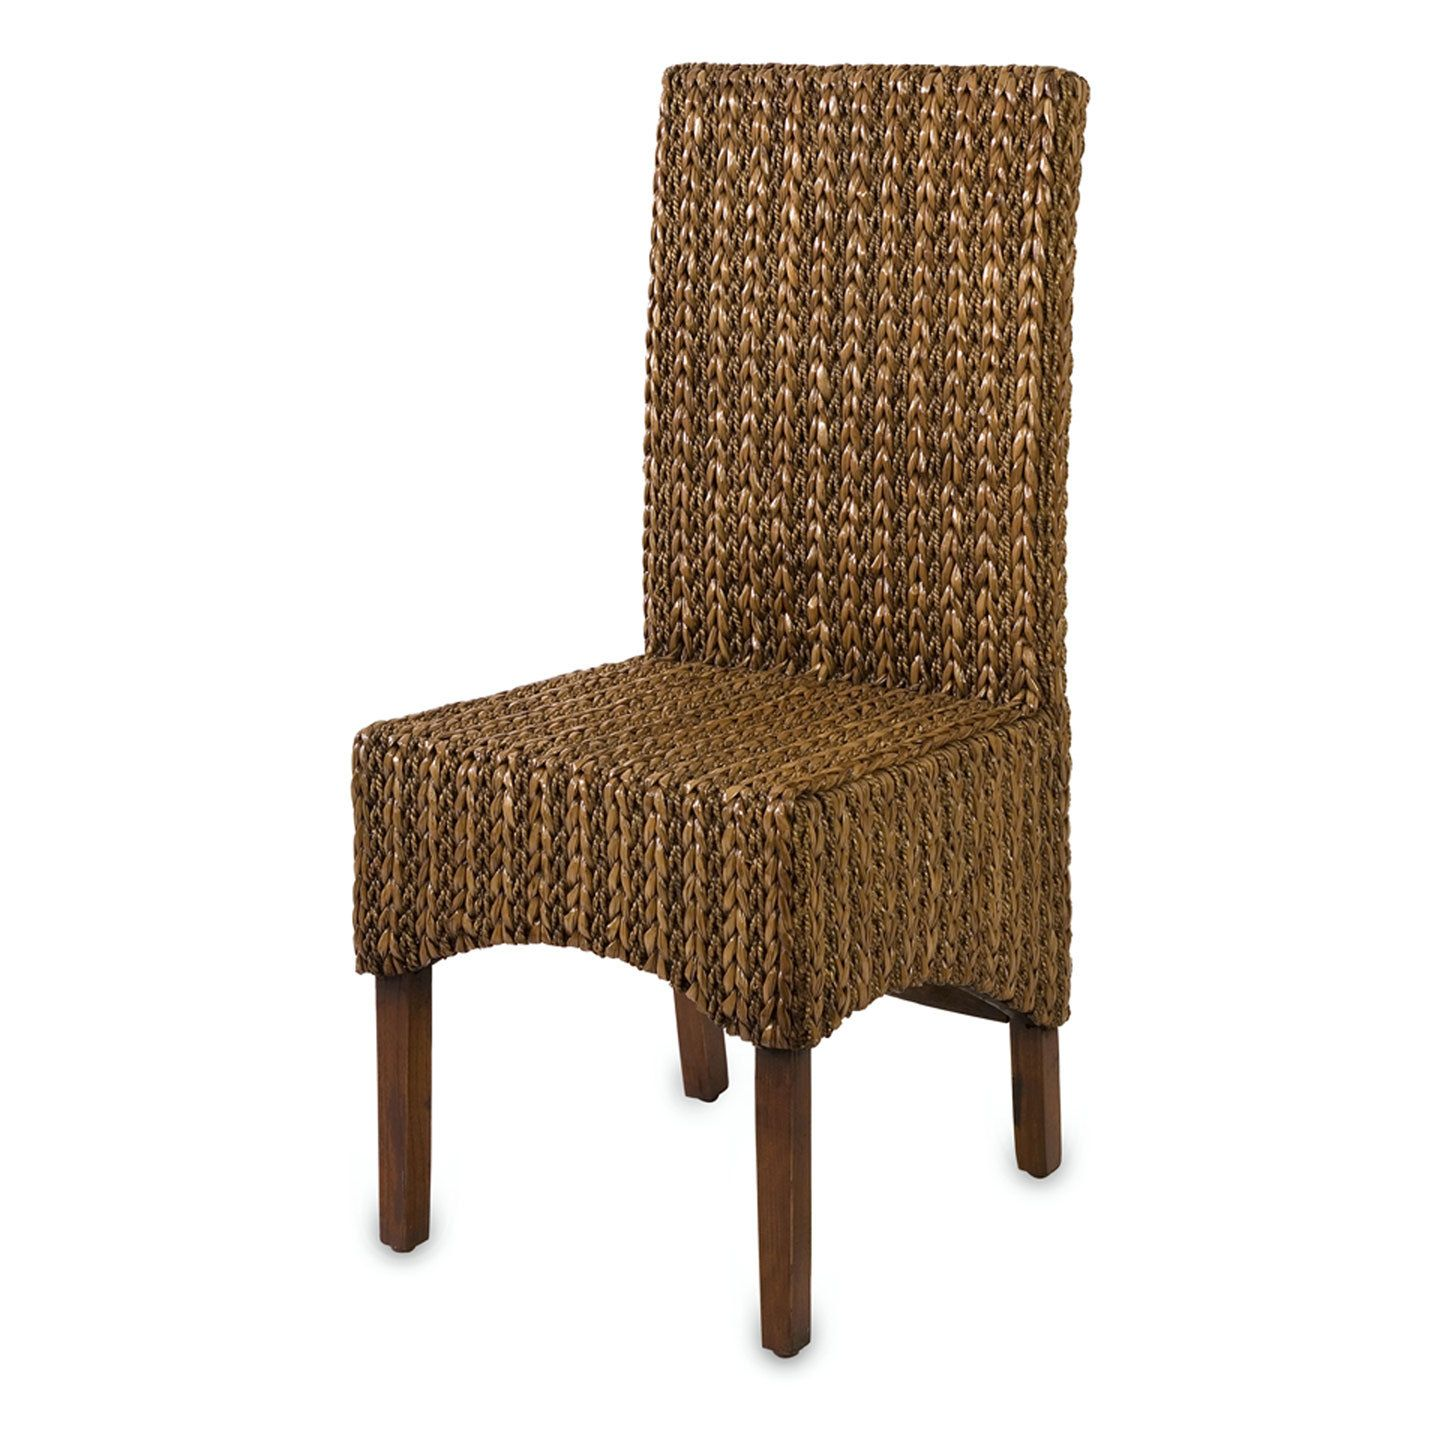 Seagrass Dining Chair Adriatic Seagrass Dining Chair 117 99 Home Decor Pinterest